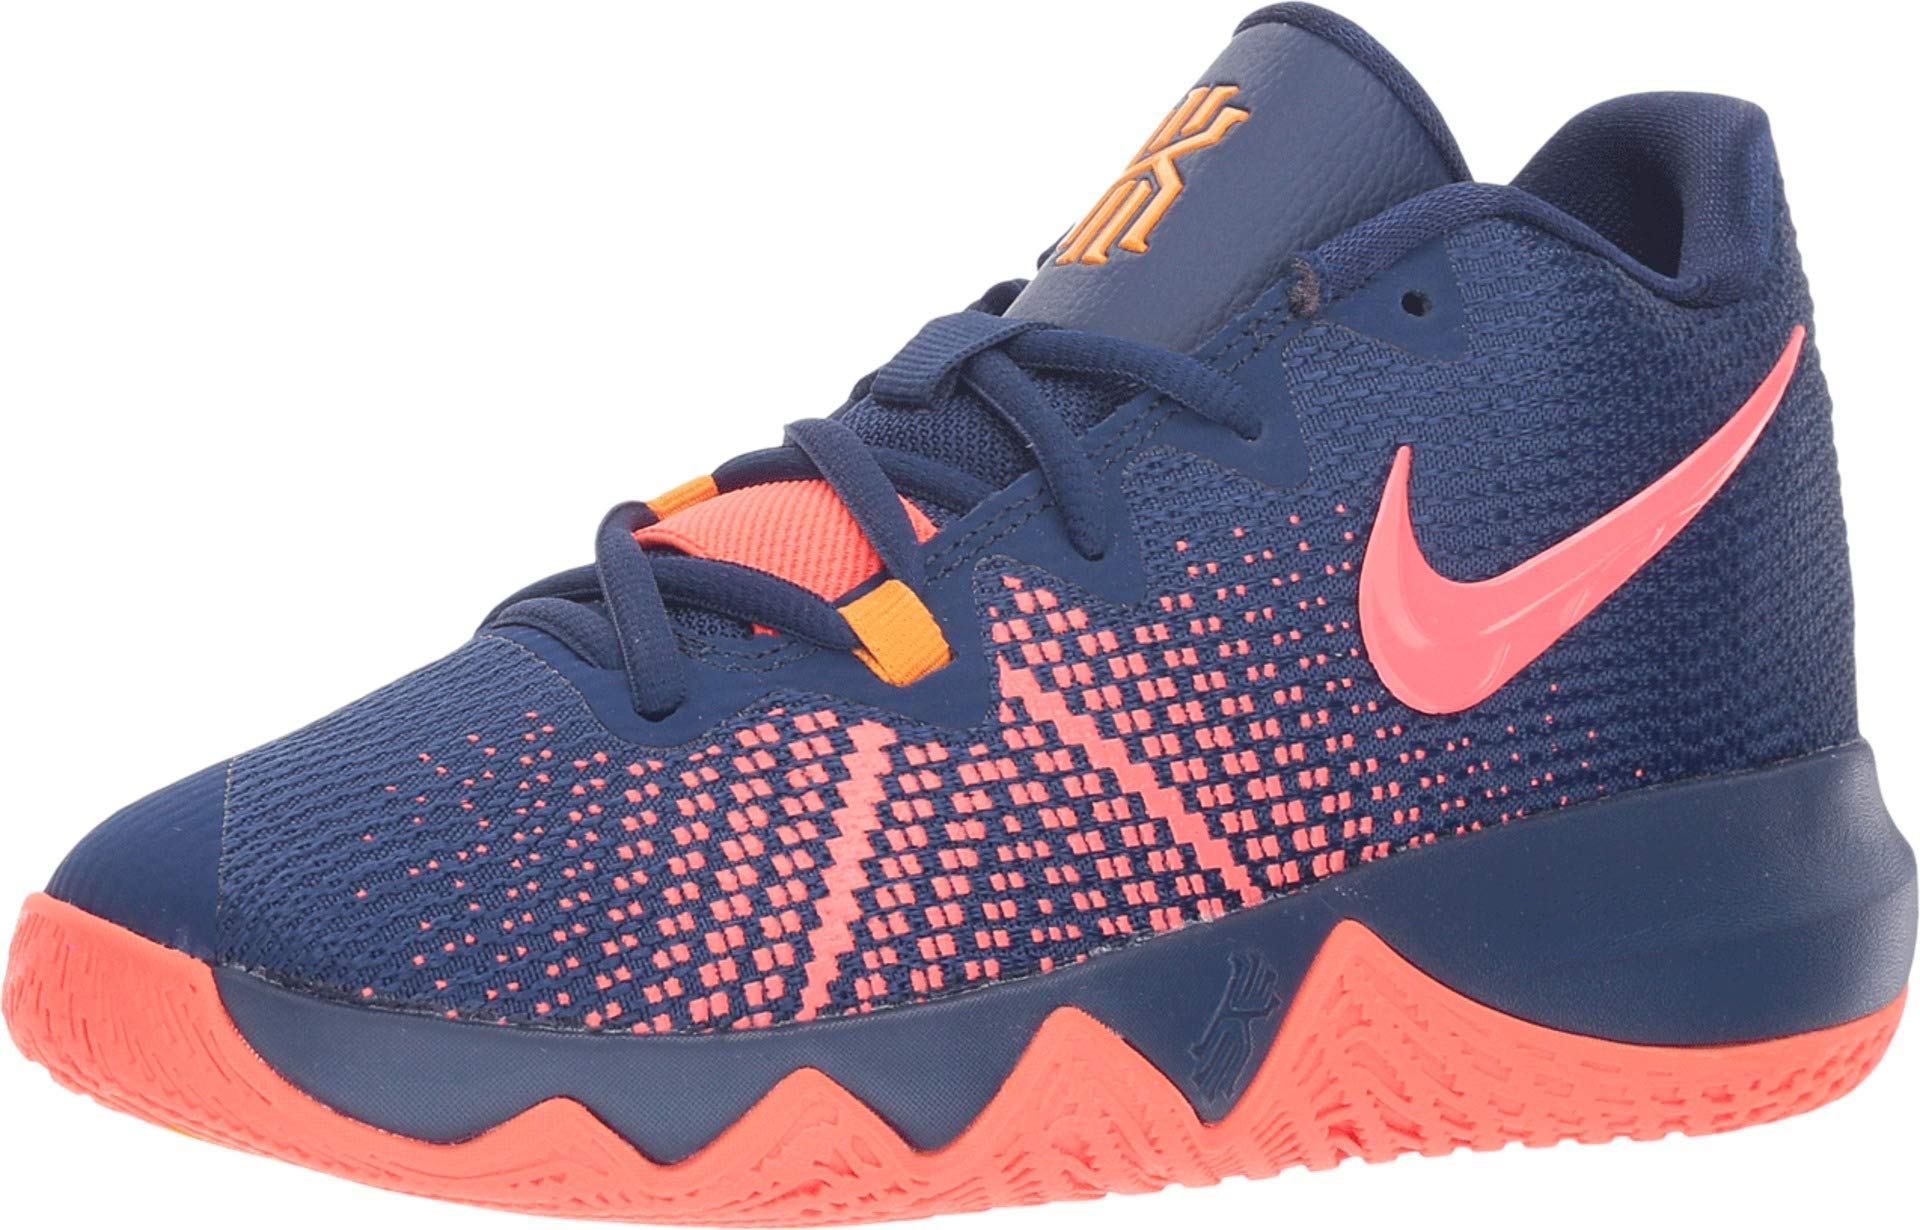 Nike Boy's Kyrie Flytrap Basketball Shoe Blue Void/Flash Crimson/Orange Peel Size 3.5 M US